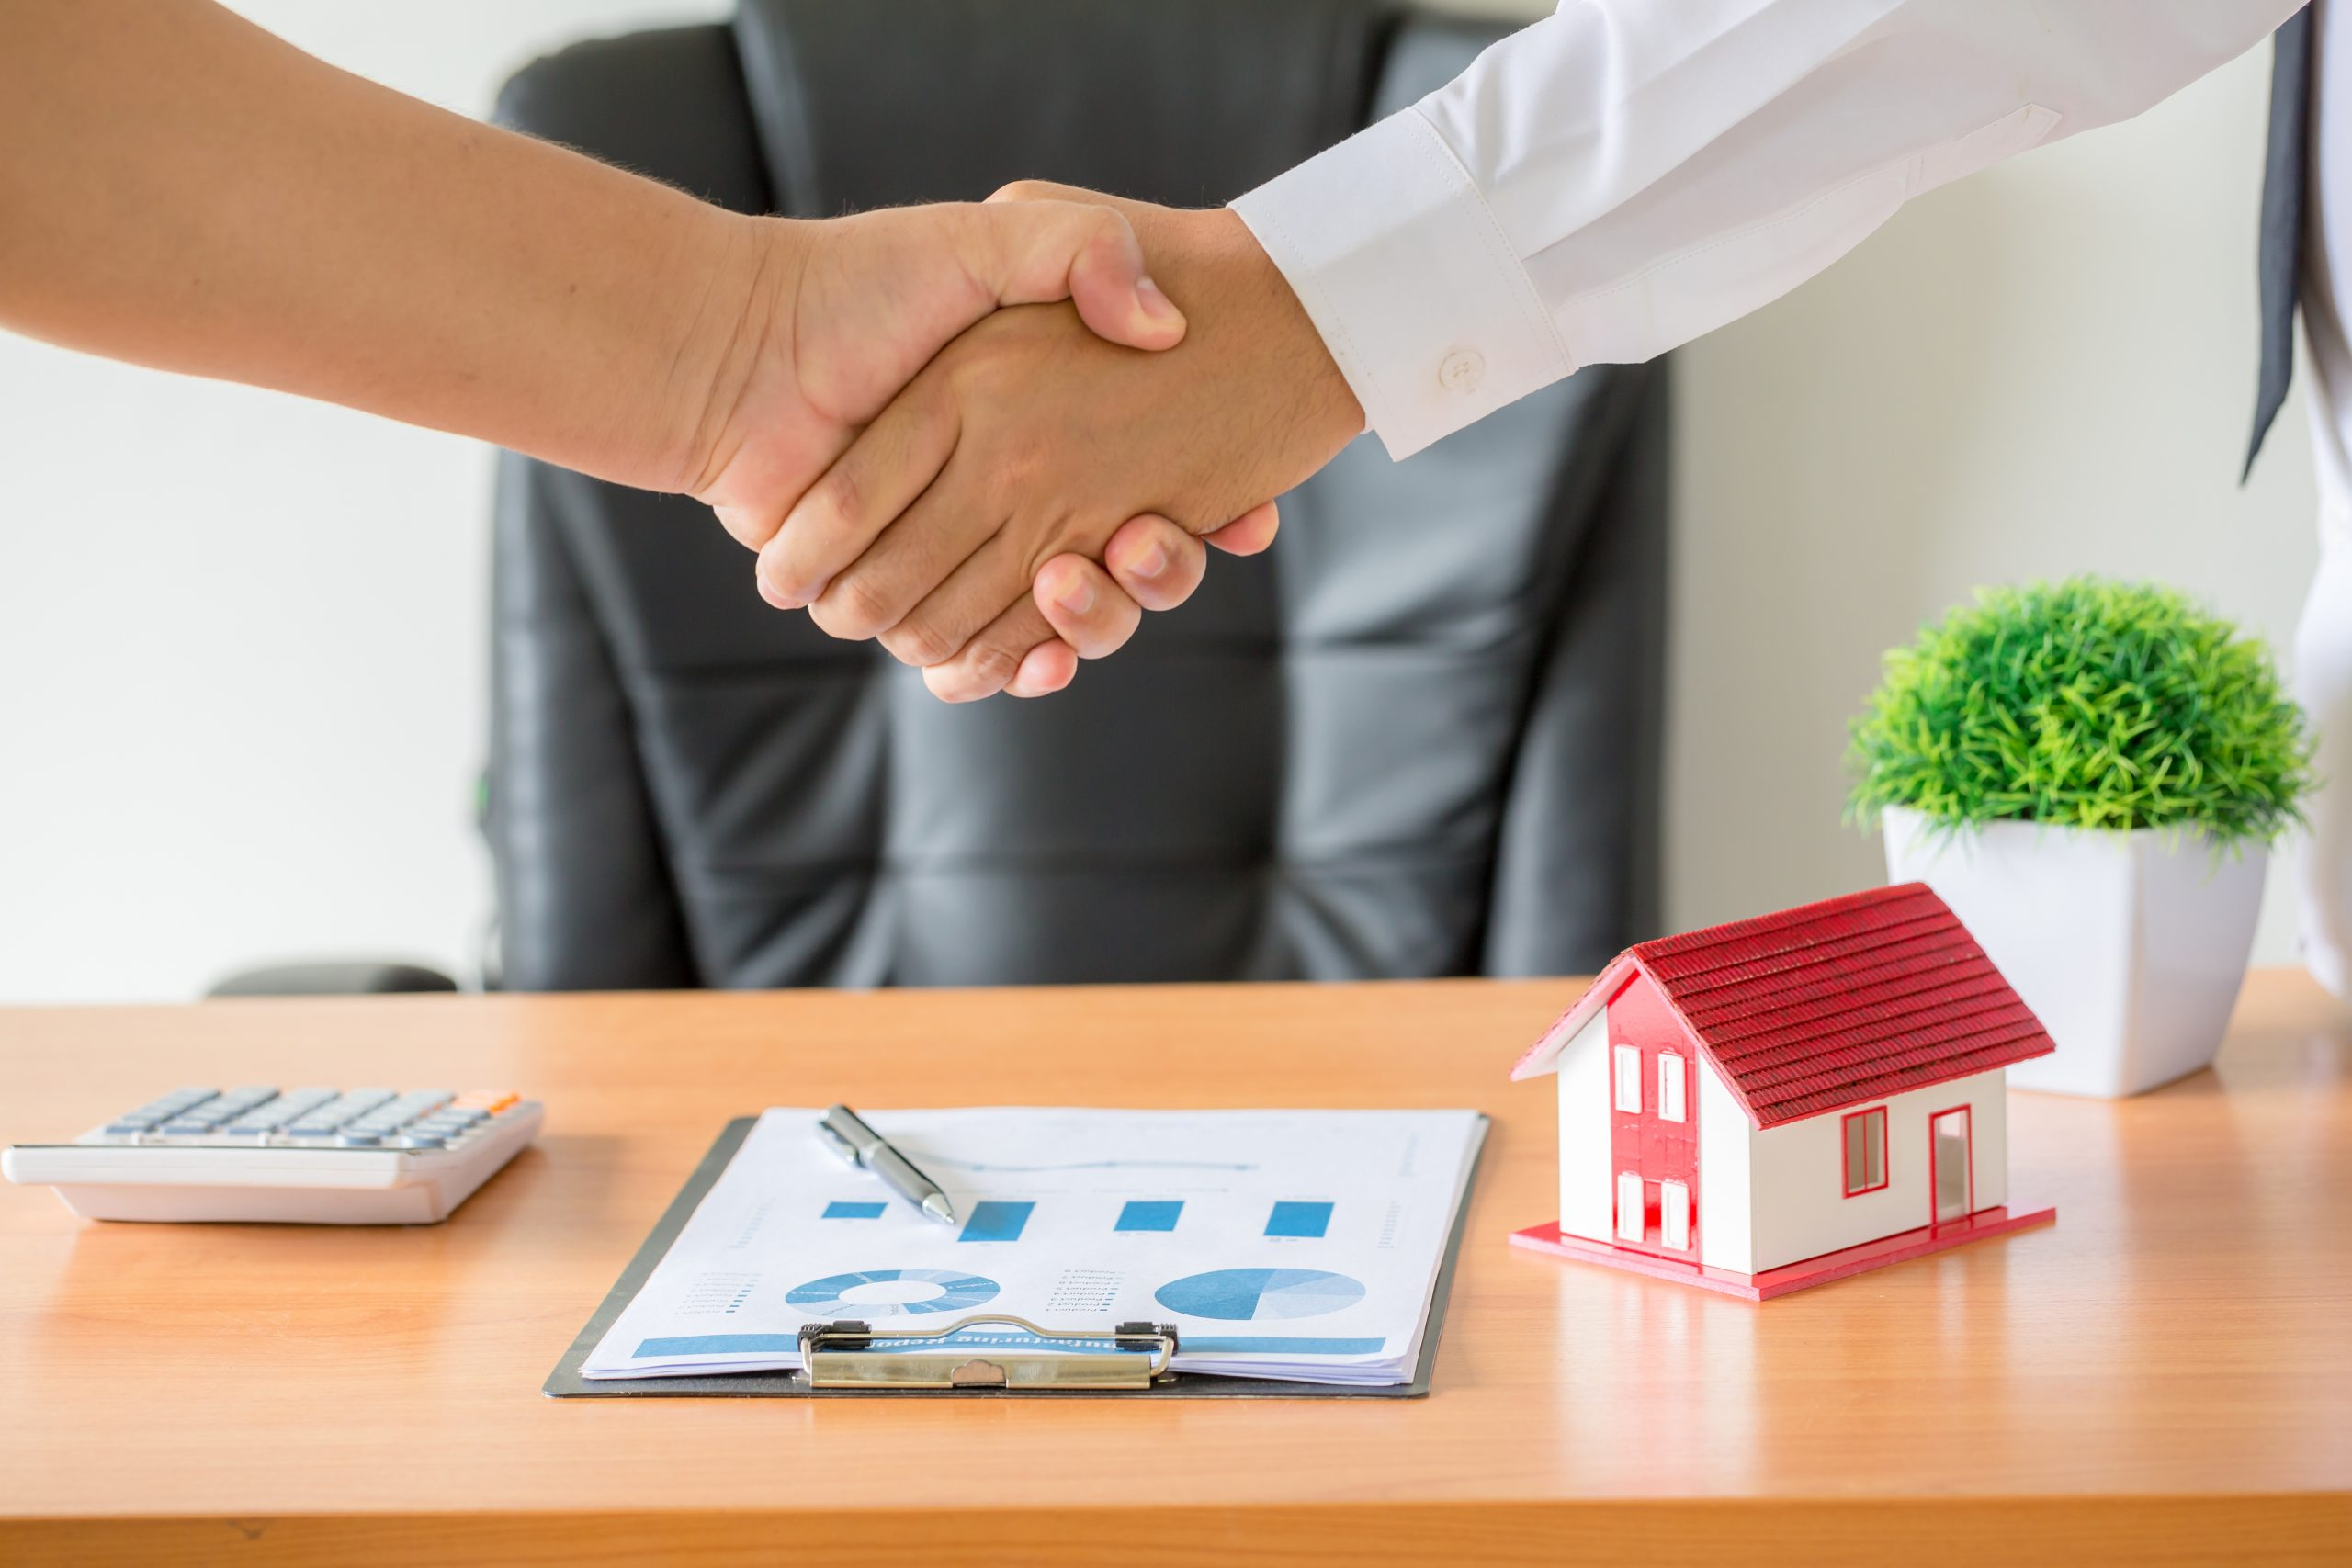 5 Home Buying Habits You Should Adopt Now